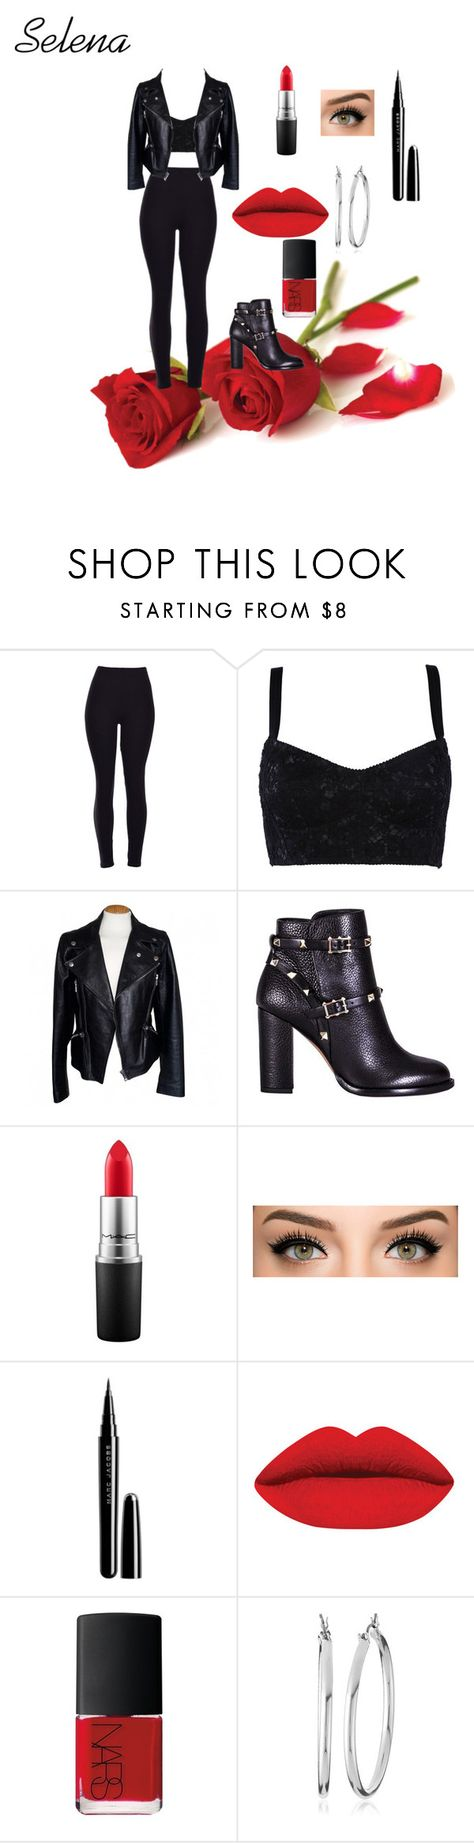 """Selena Quintanilla"" by cvaxciii ❤ liked on Polyvore featuring Dolce&Gabbana, Alexander McQueen, Valentino, MAC Cosmetics, Marc Jacobs, NARS Cosmetics, Nine West, women's clothing, women's fashion and women"